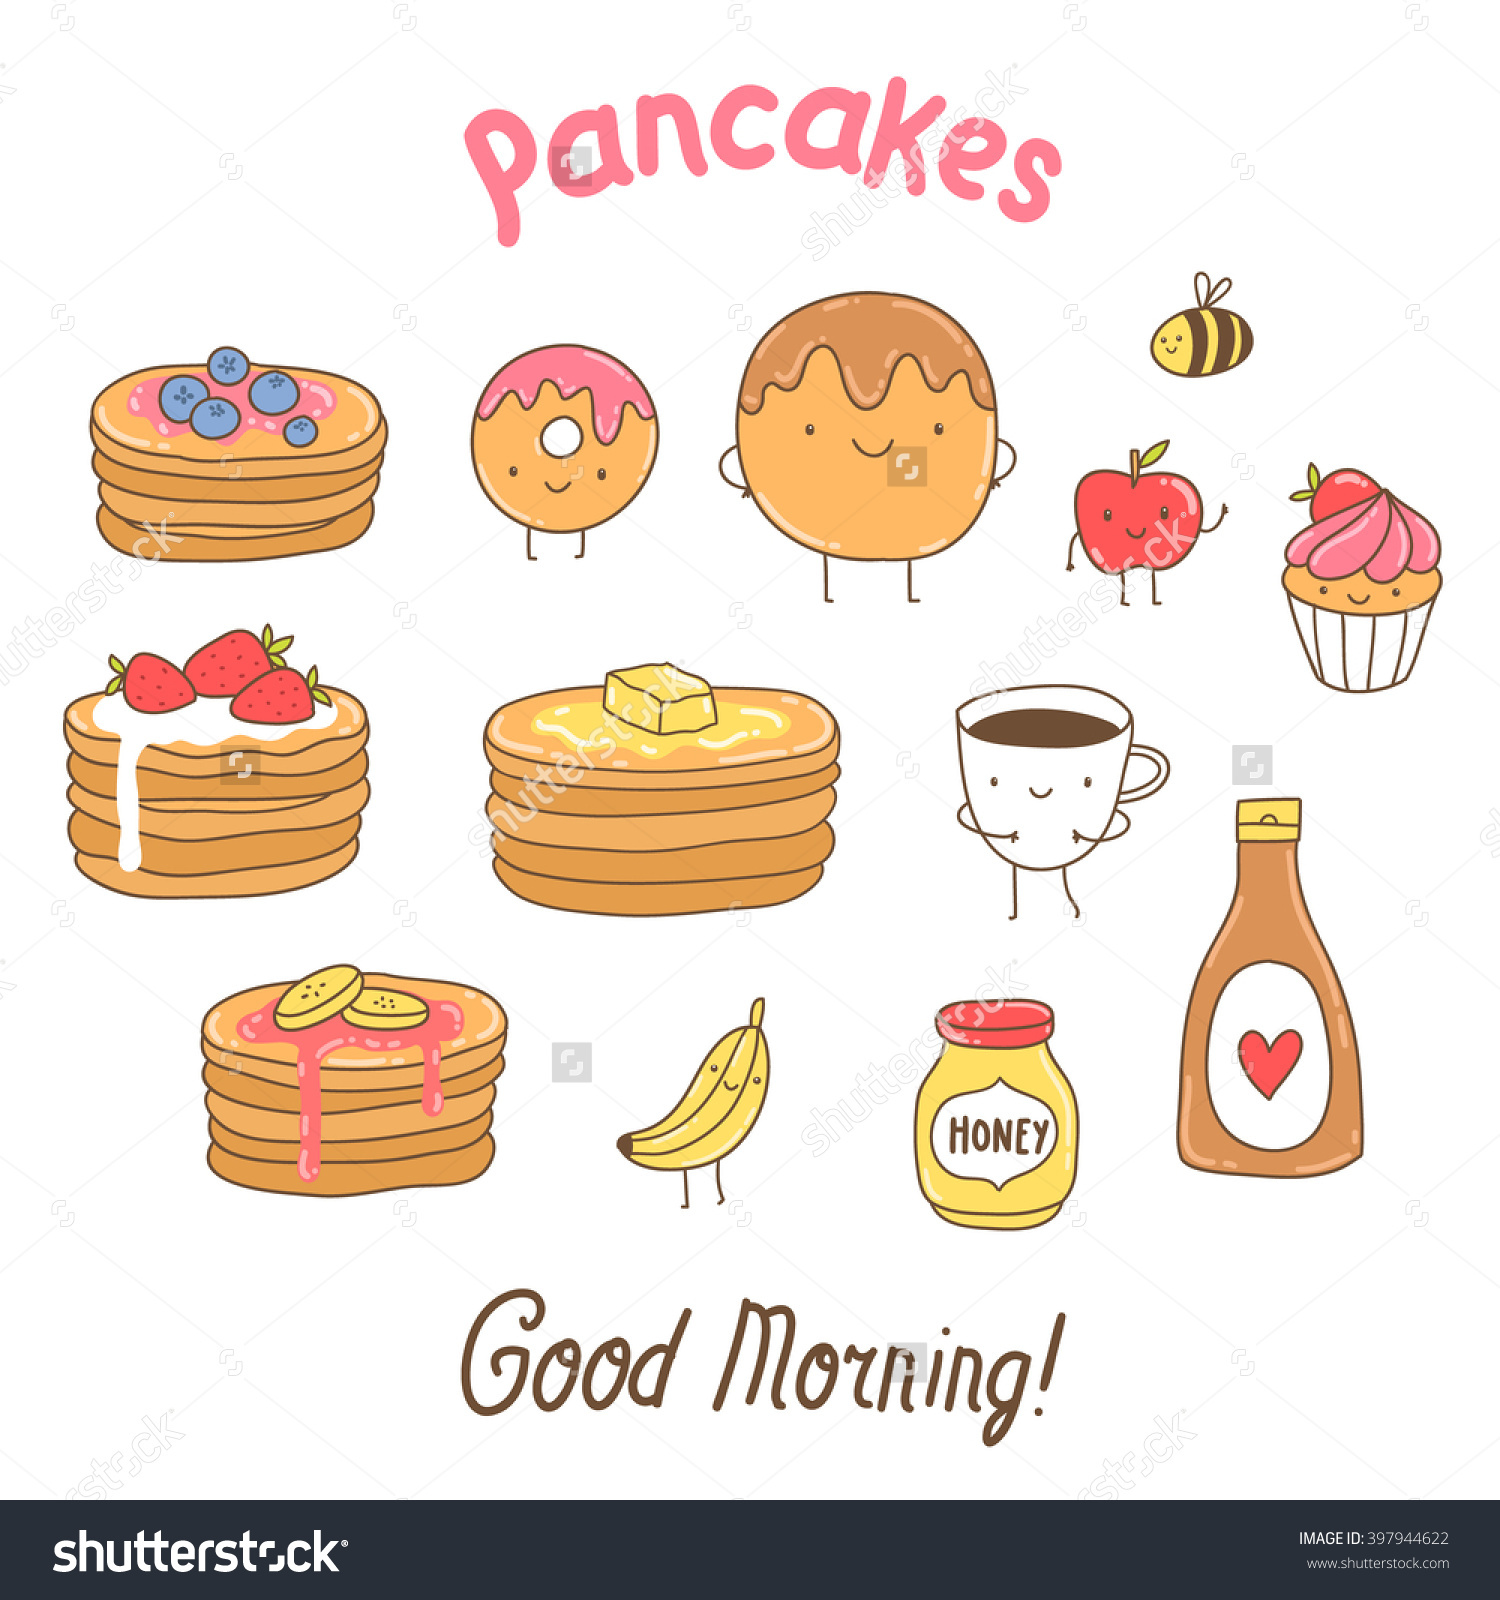 Funny Pancakes Illustration Adorable Vector Food Stock Vector.